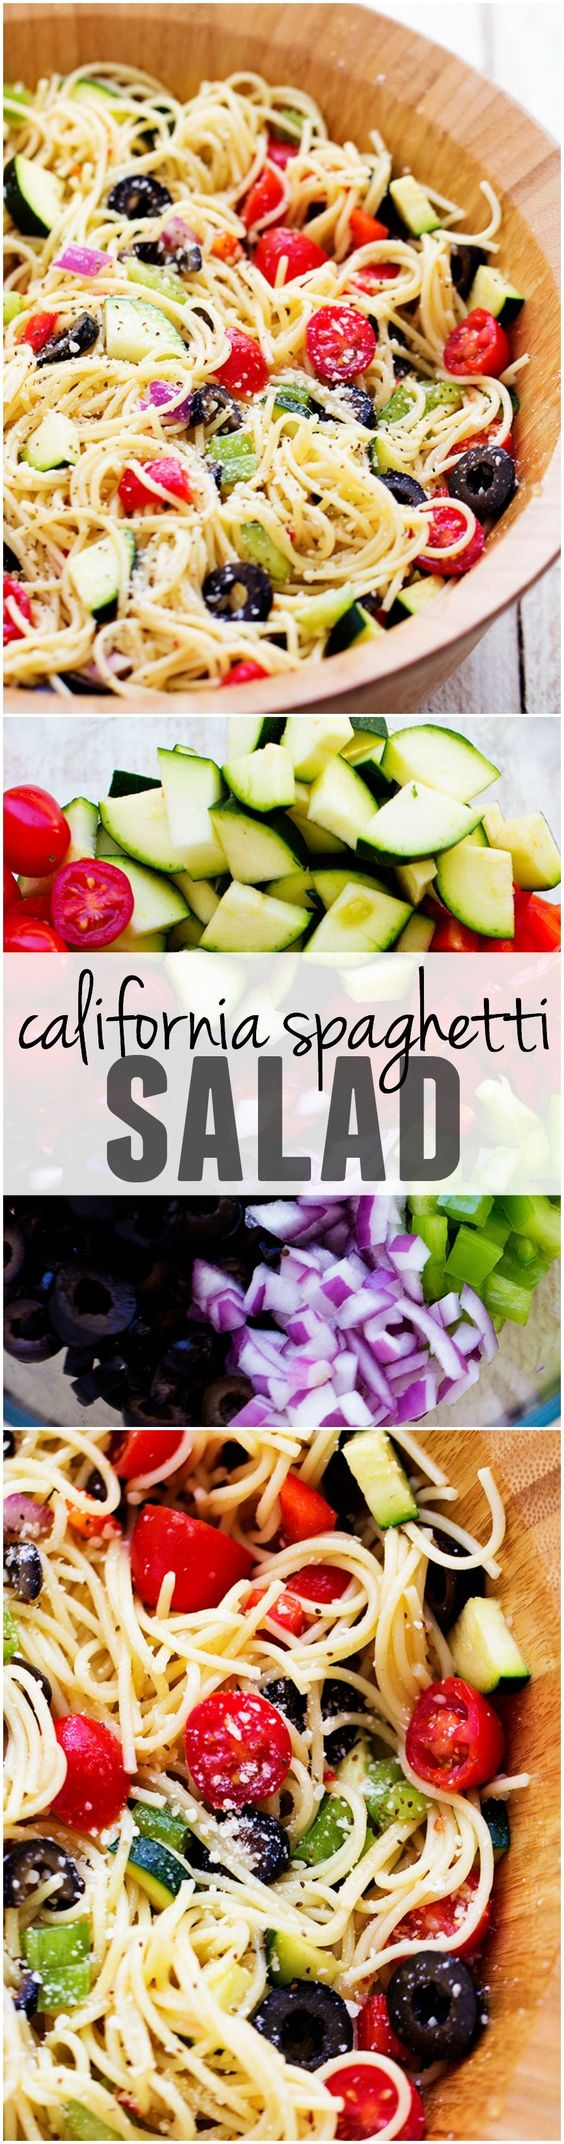 California Spaghetti Pasta Salad Recipe via The Recipe Critic - This California Spaghetti Salad is full of delicious summer veggies and topped with zesty italian dressing... it will be the HUGE HIT of any potluck! Easy Pasta Salad Recipes - The BEST Yummy Barbecue Side Dishes, Potluck Favorites and Summer Dinner Party Crowd Pleasers #pastasaladrecipes #pastasalads #pastasalad #easypastasalad #potluckrecipes #potluck #partyfood #4thofJuly #picnicfood #sidedishrecipes #easysidedishes #cookoutfood #barbecuefood #blockparty